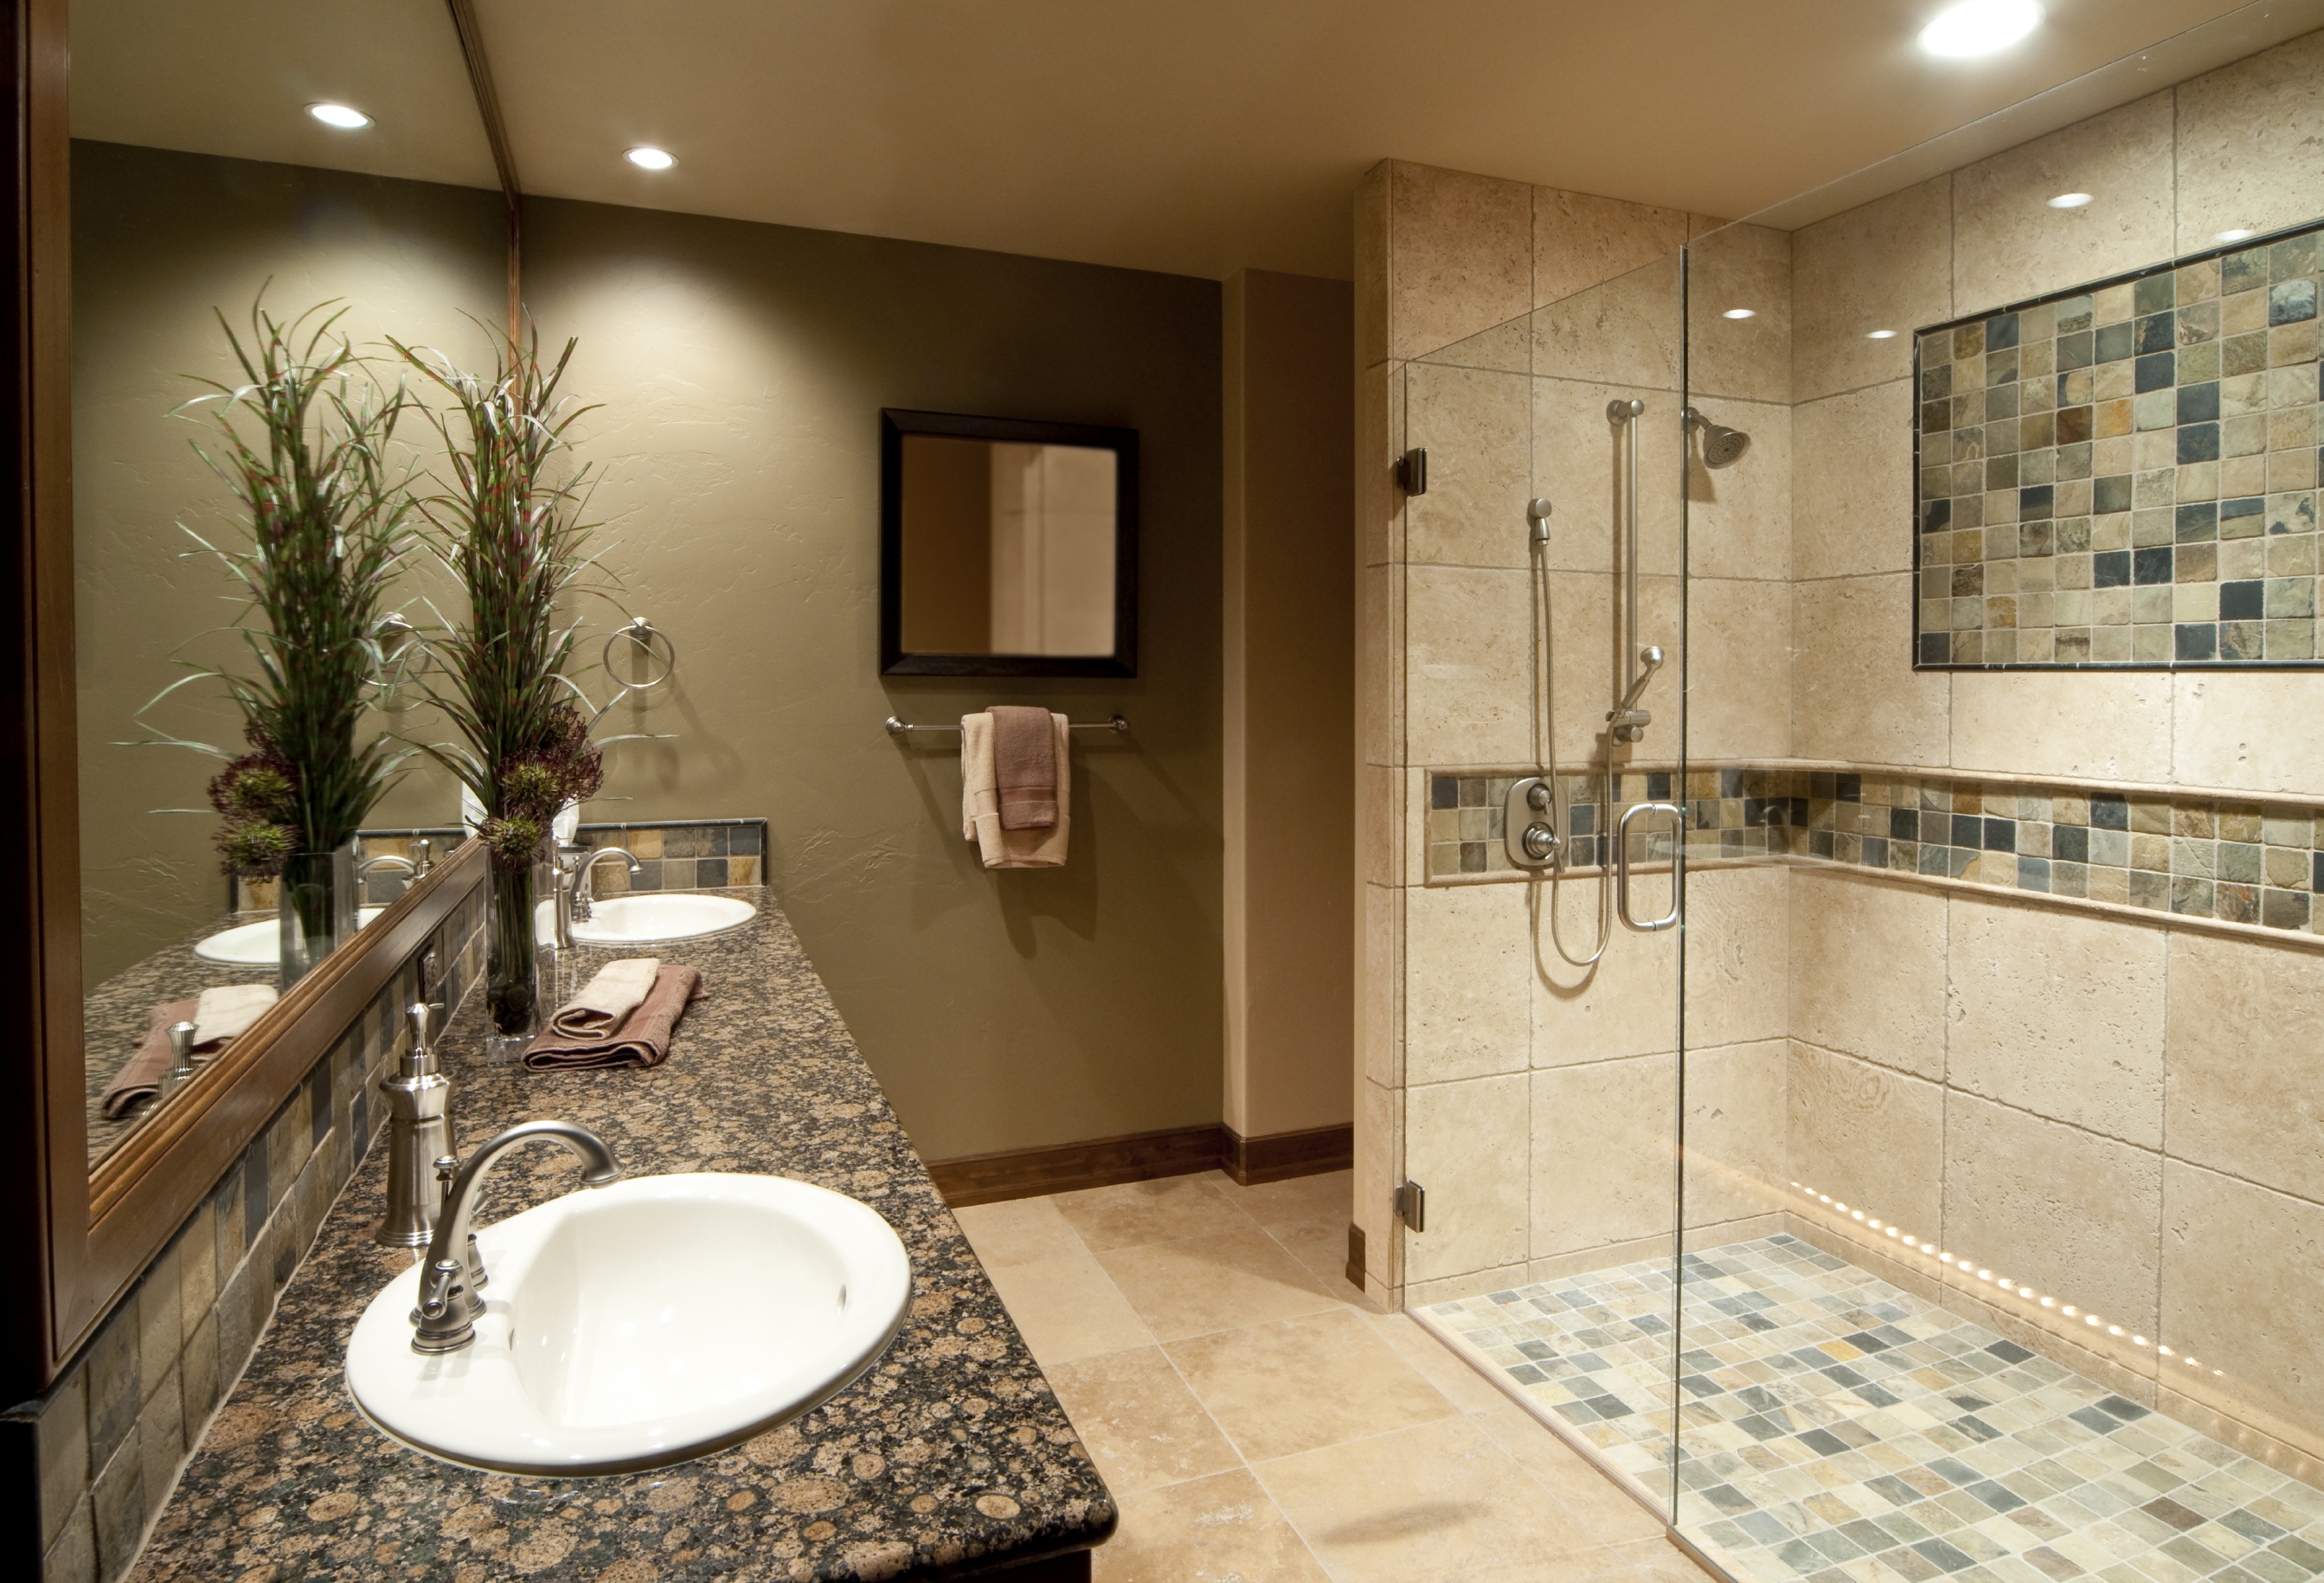 modern-bathroom-remodeling-eas-with-travertine-tiles-bathroom-designs-for-small-bathrooms-pictures-bathroom-picture-ideas-for-small-bathroom-remodel